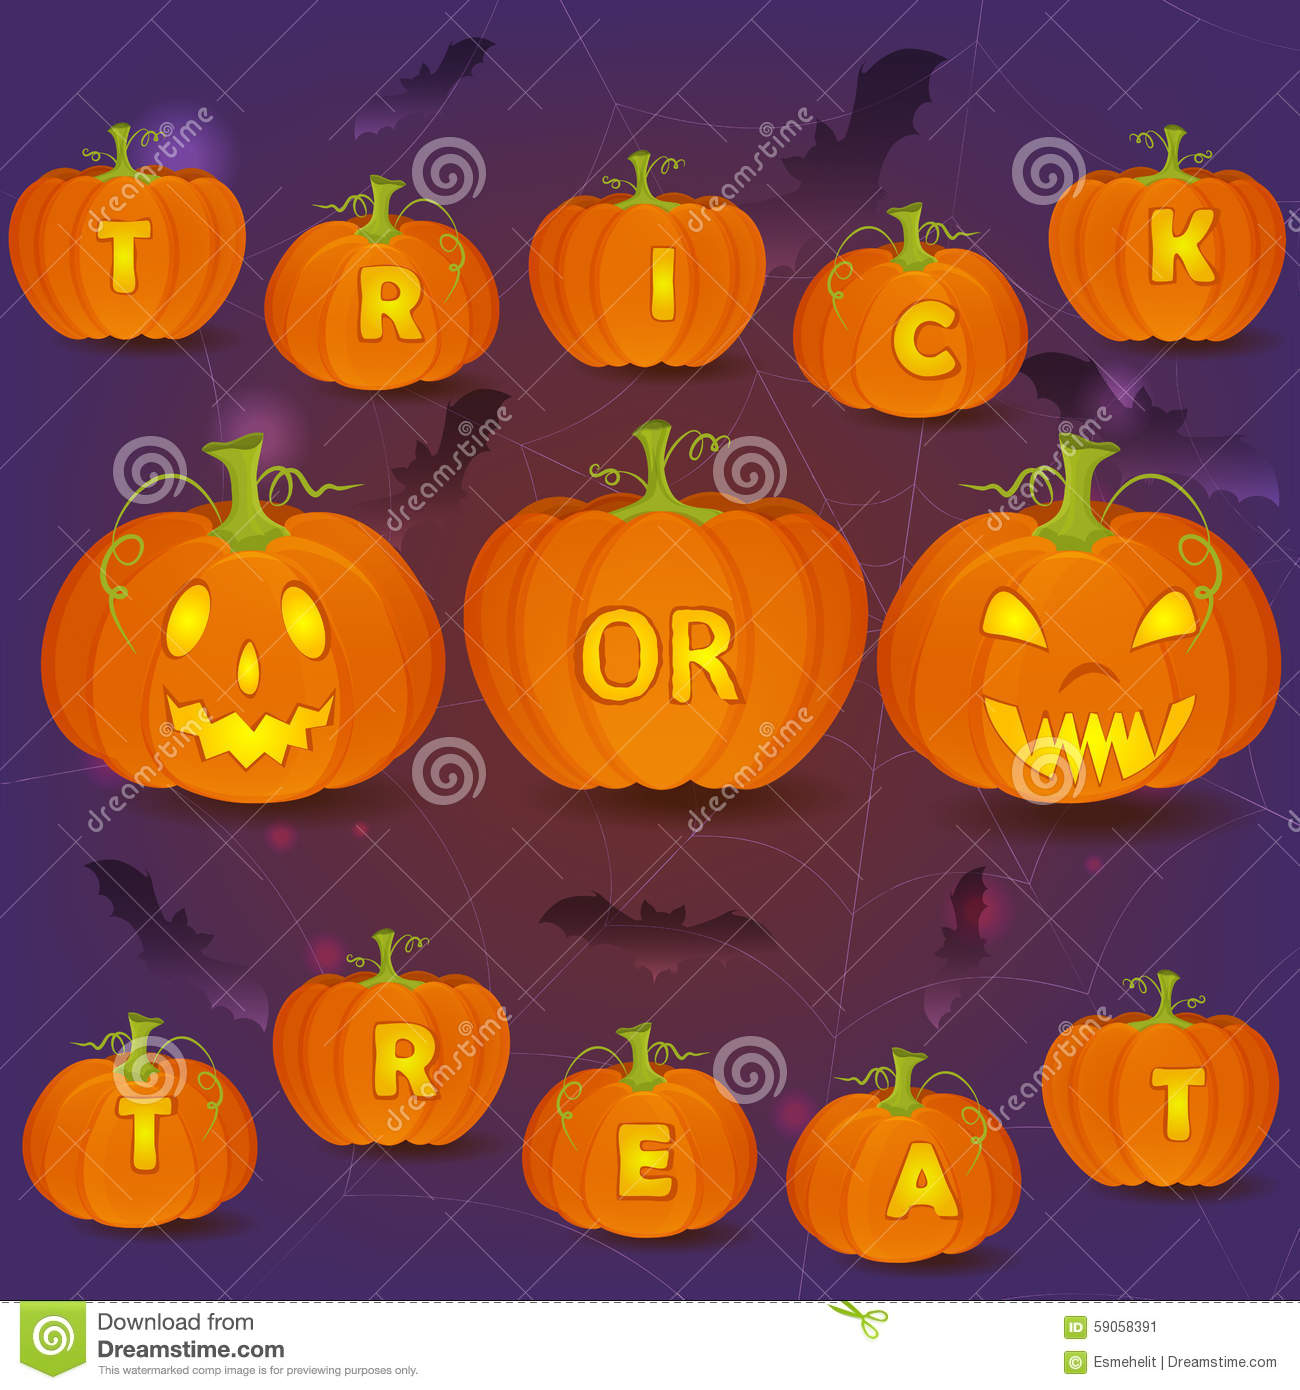 Halloween Trick Or Treat Card Template Stock Vector - Illustration ...